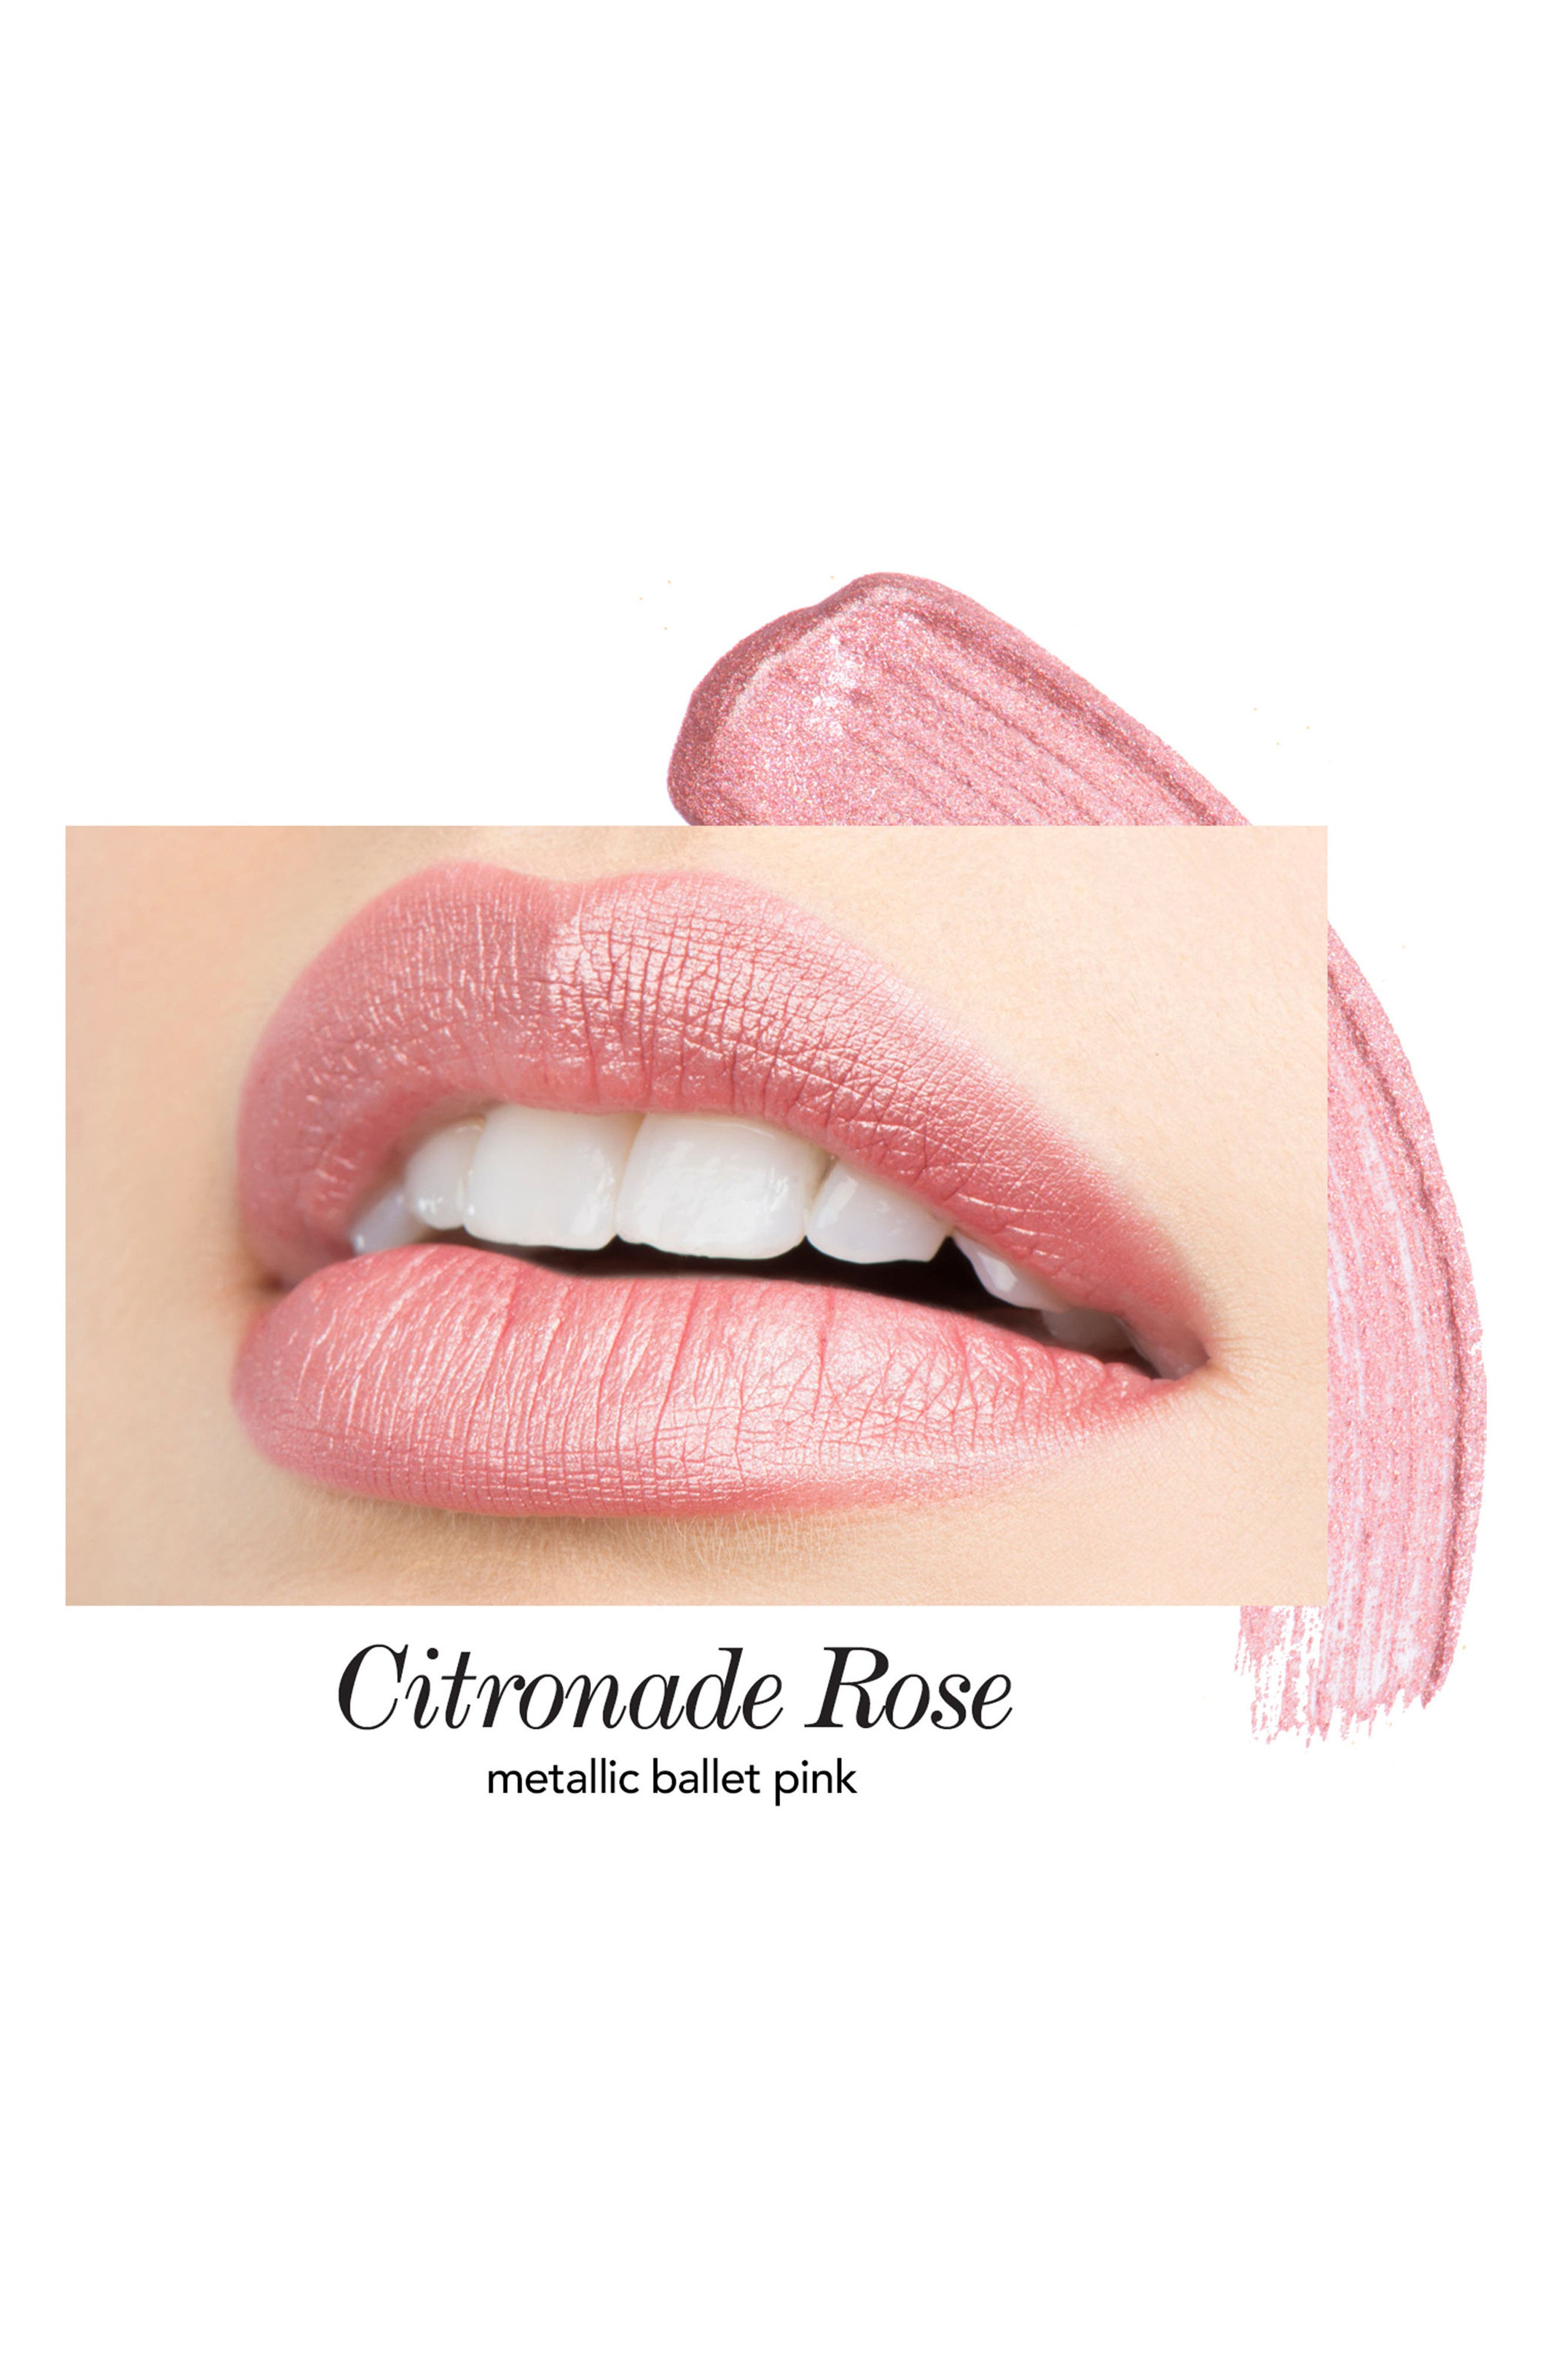 Melon & Citronade Rose Long-Wear Lip Crème Liquid Lipstick Duo,                             Alternate thumbnail 3, color,                             No Color